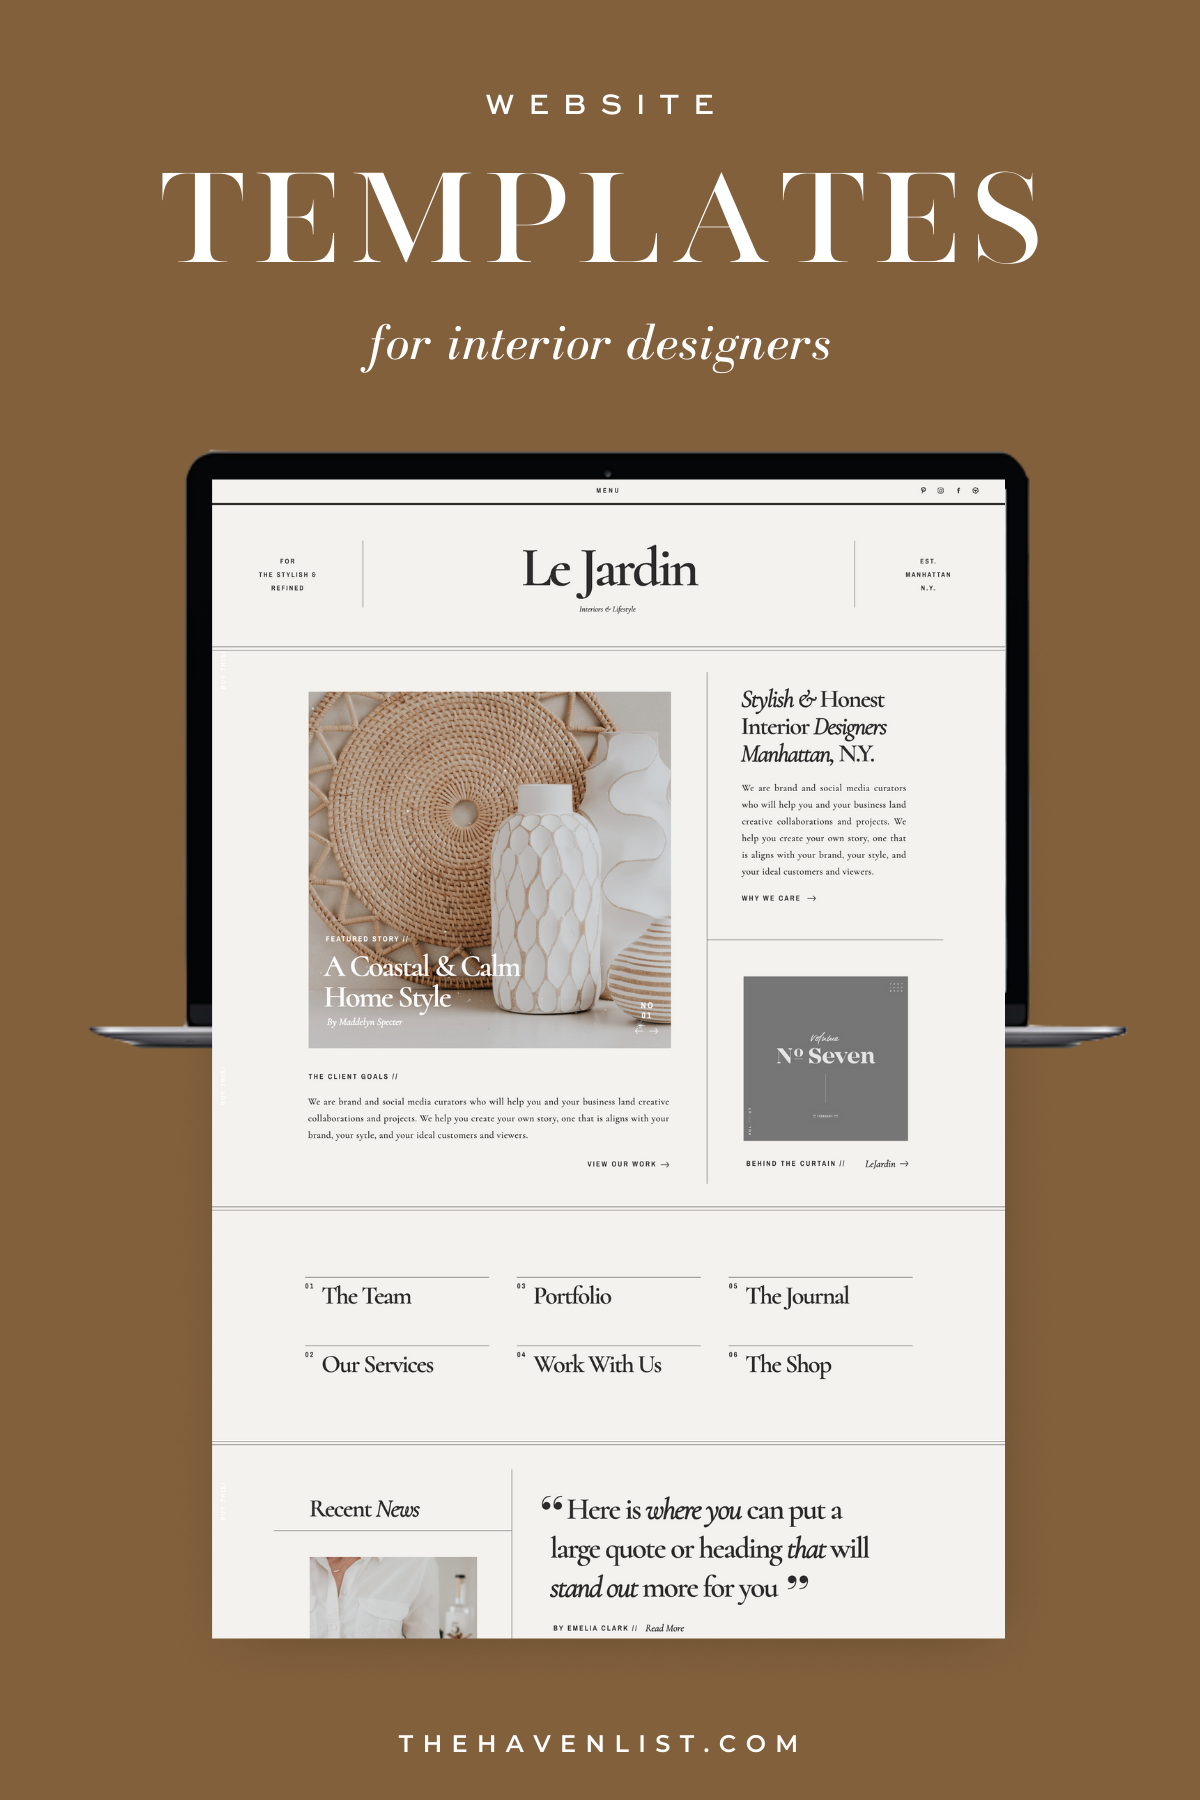 Easy-To-Edit Showit Website Templates and Customizable Website Templates for Interior Designers and Creatives - Stylish Social Media Templates, Website Content Planner & Guide, Showit Website Template, Saffron Avenue, The Haven List, Jardin